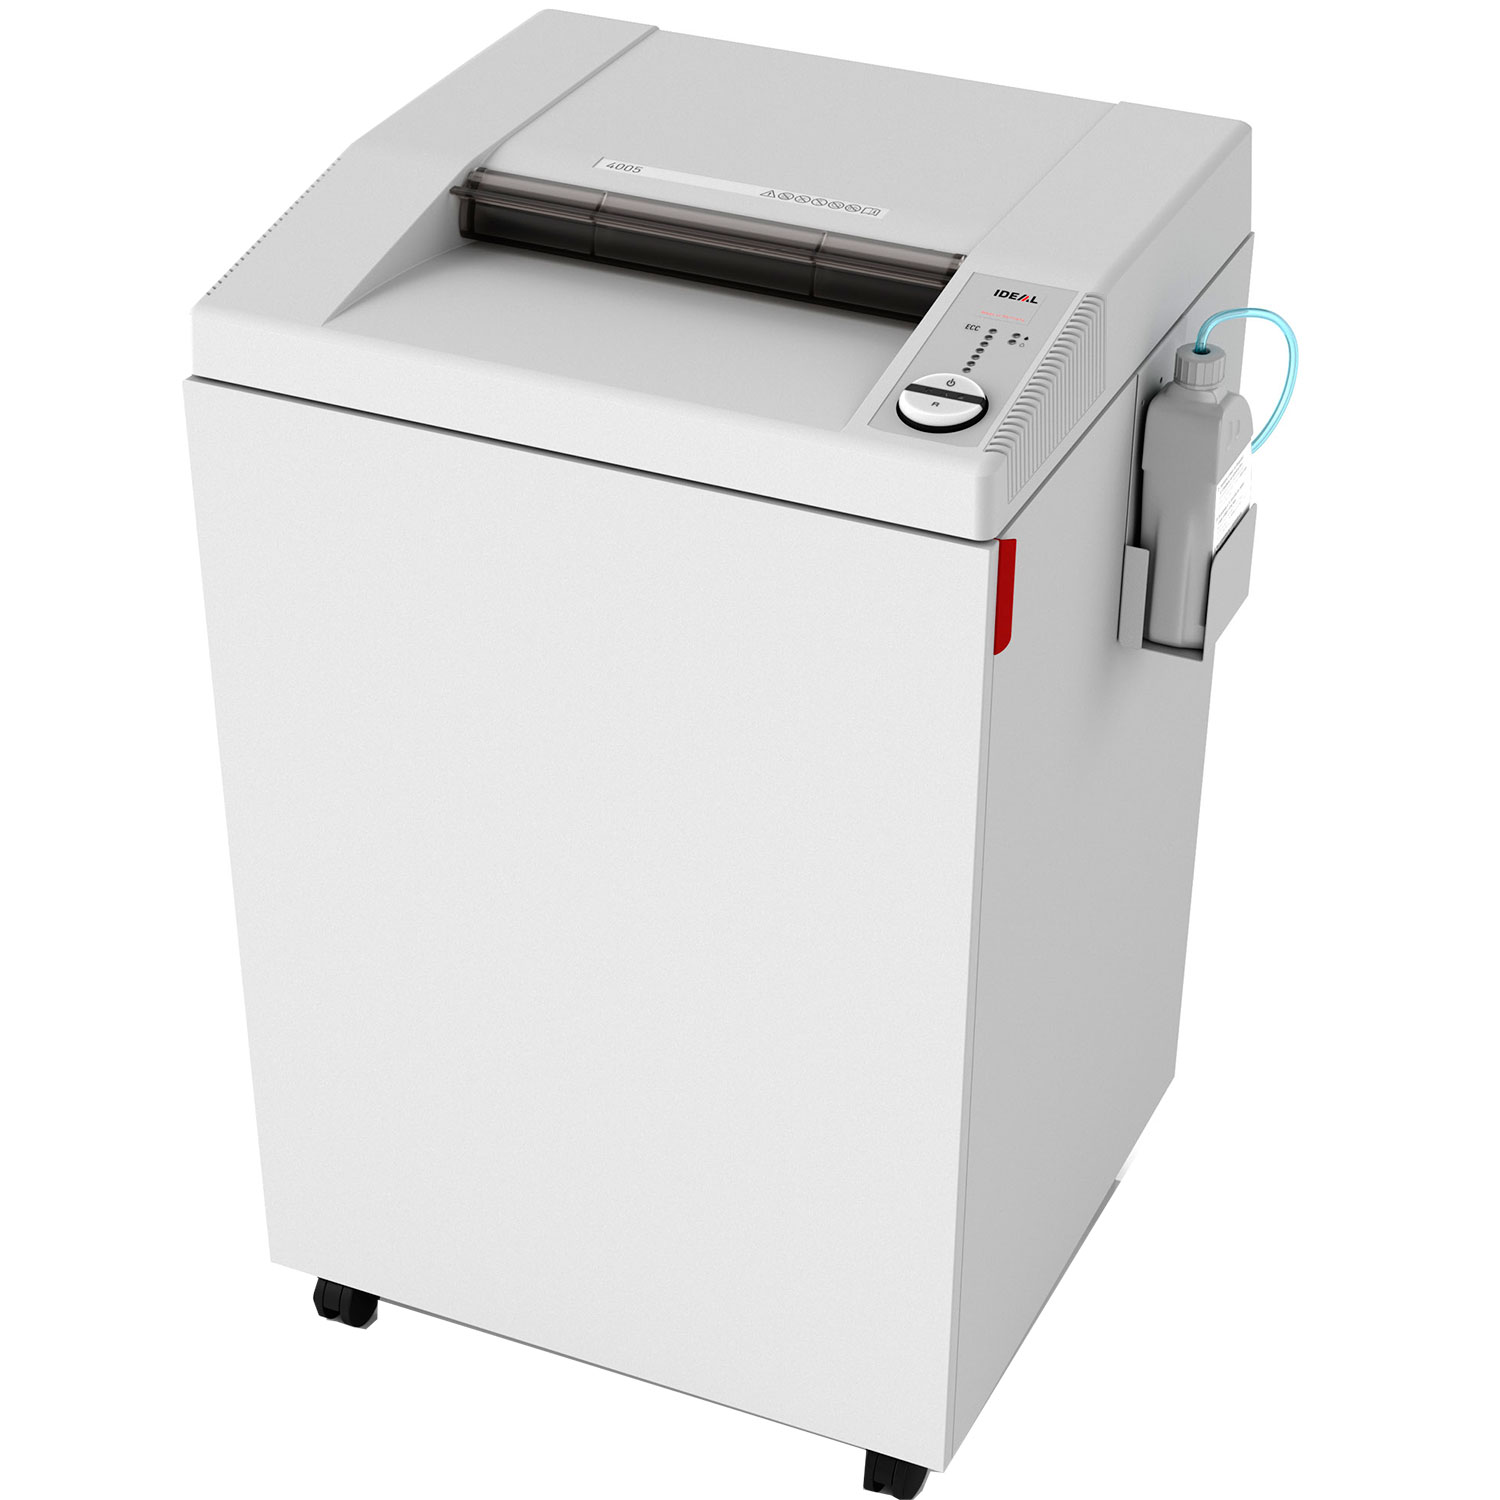 IDEAL 4005 Strip-Cut 6mm Paper Shredder